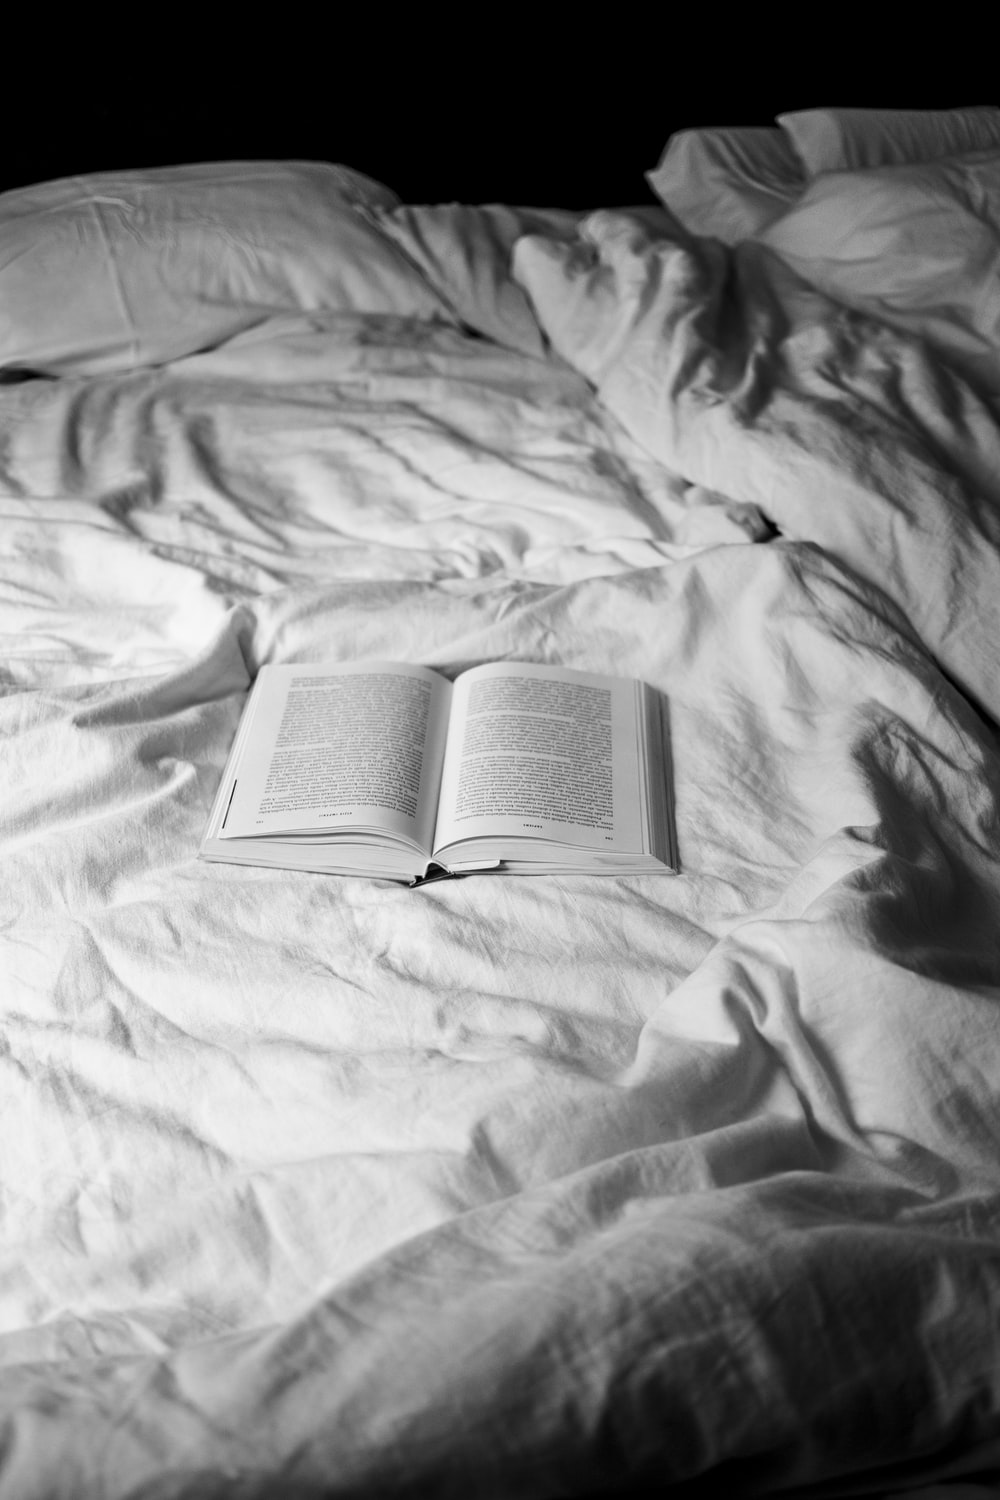 opened white book on bed